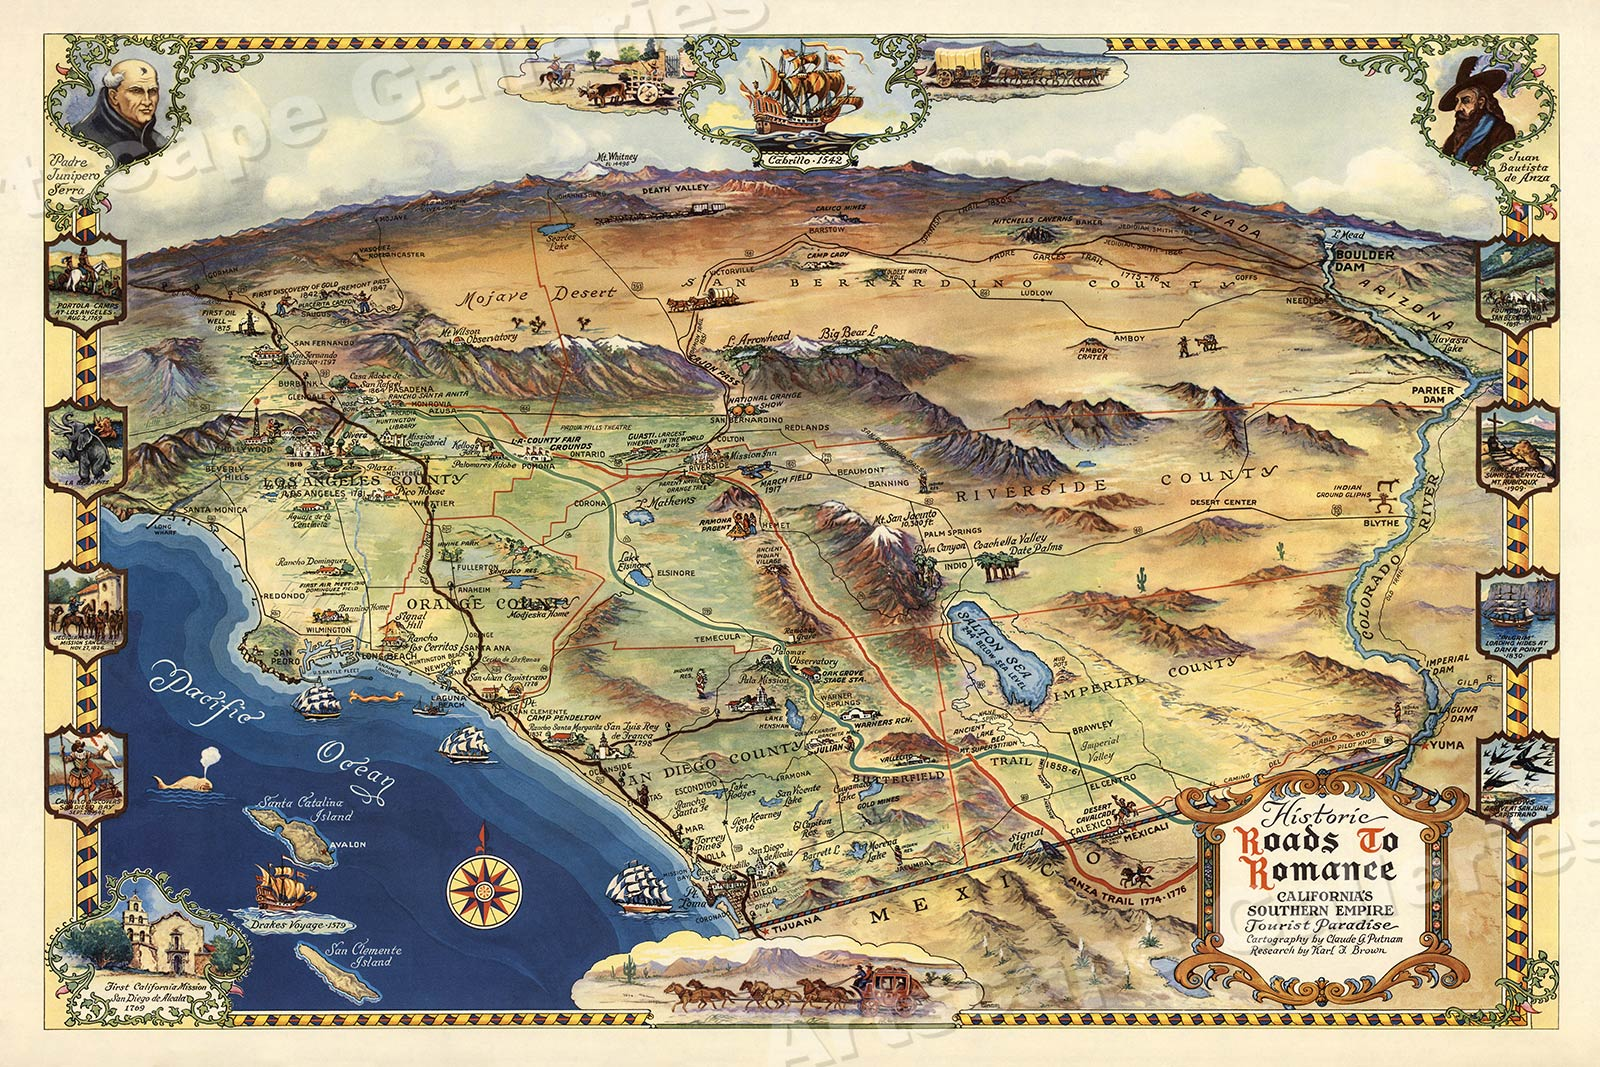 Details about 1946 Roads to Romance Southern California Old Map - 20x30